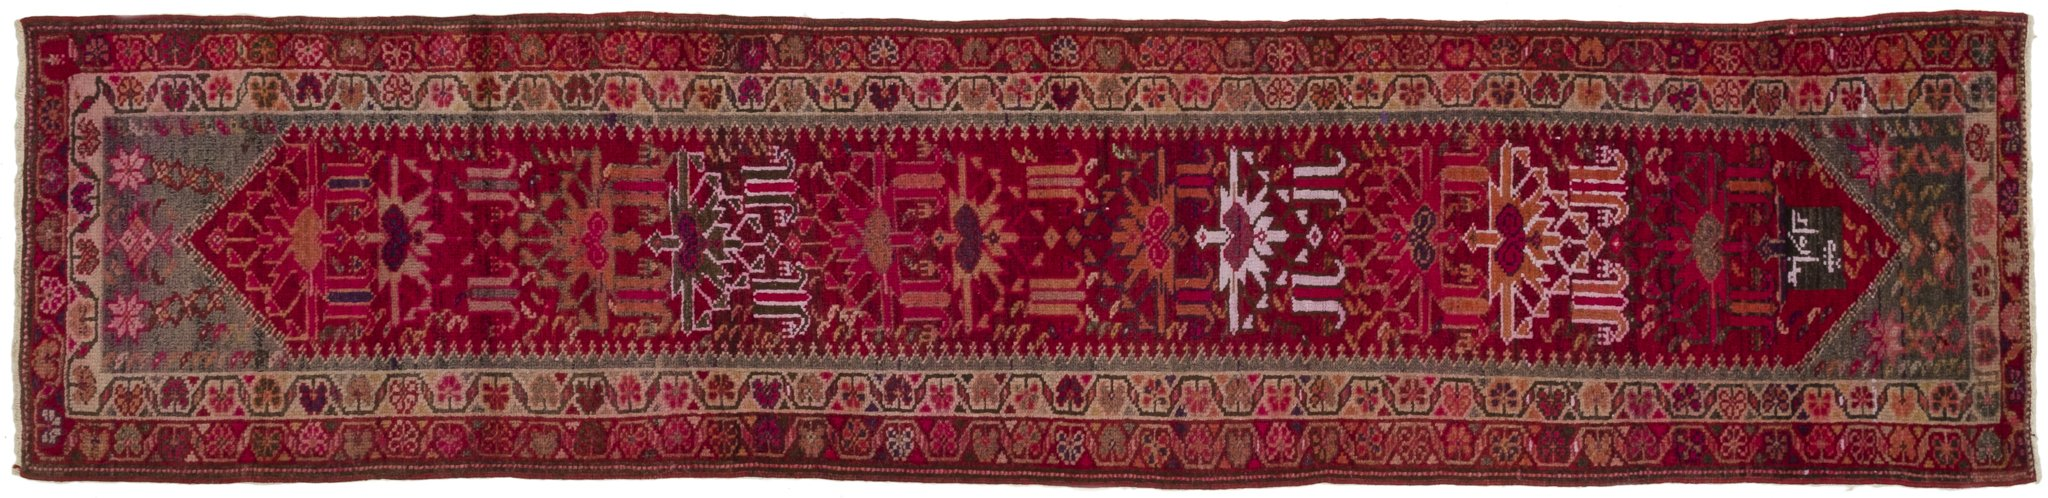 Vintage Turkish Runner Rug Eveliina